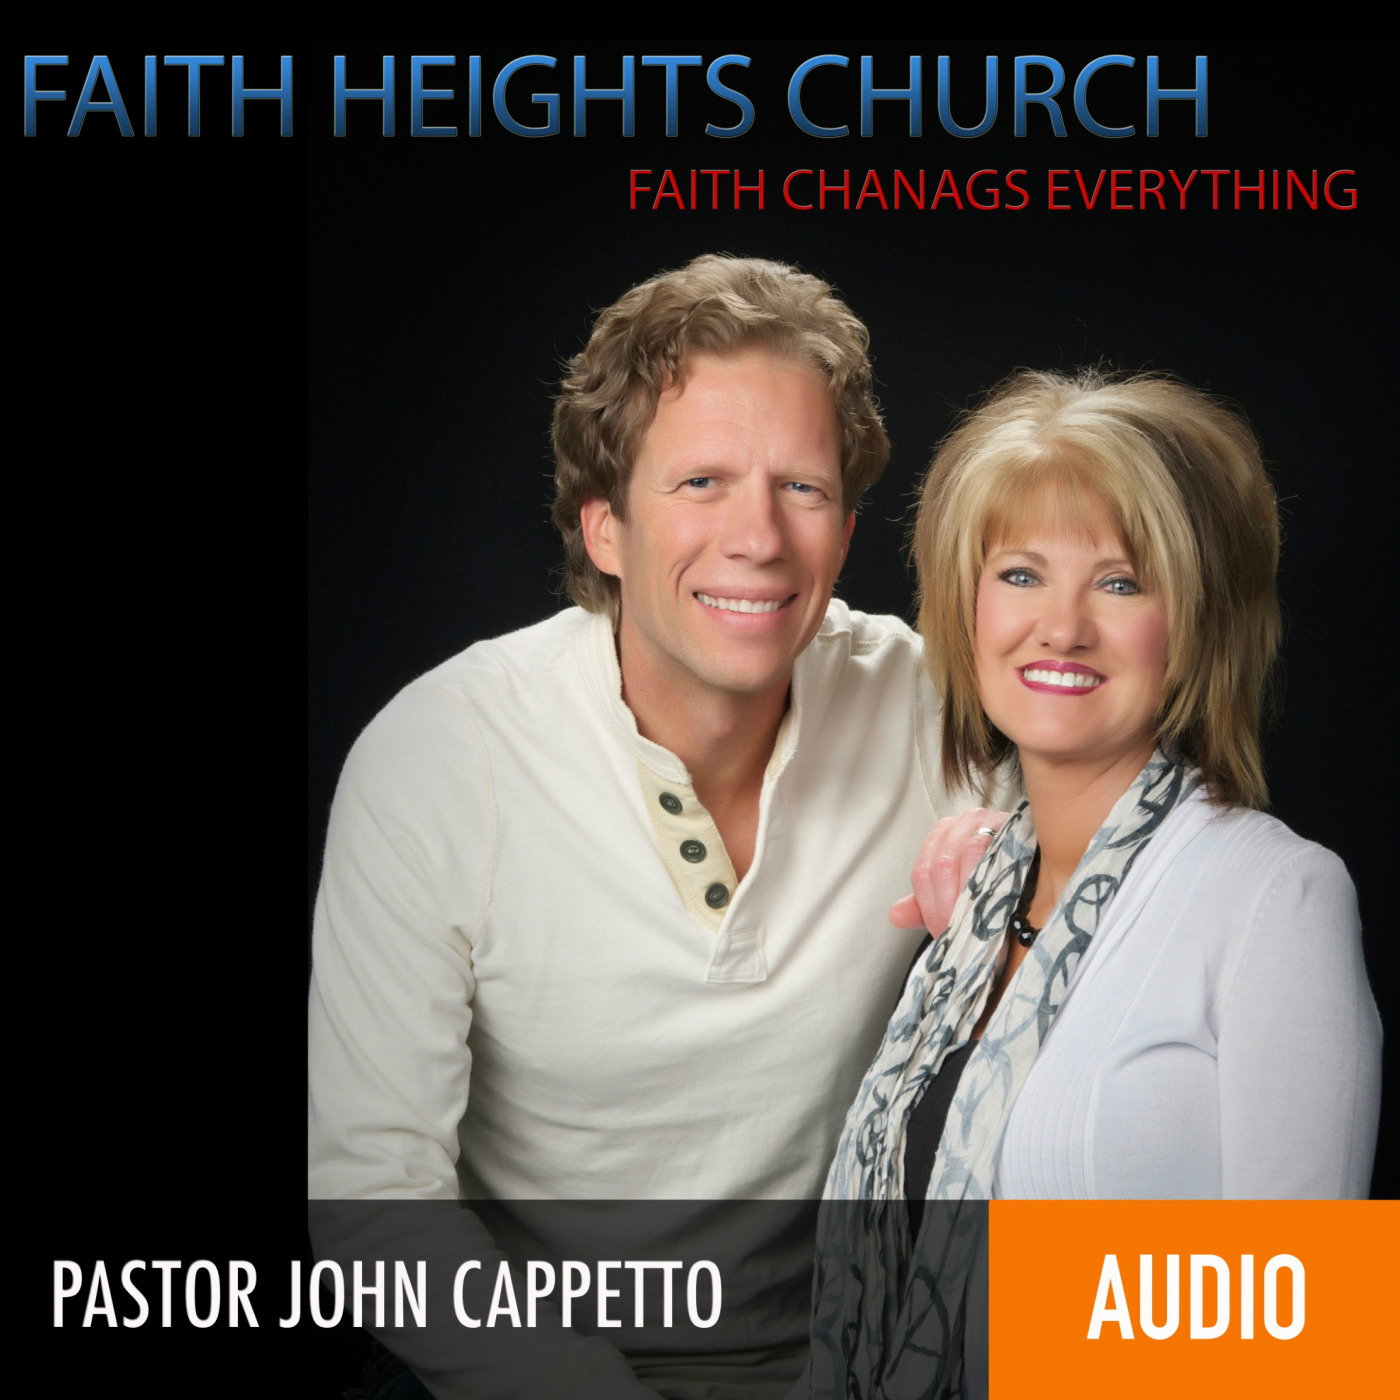 Faith Heights Church Audio Podcast